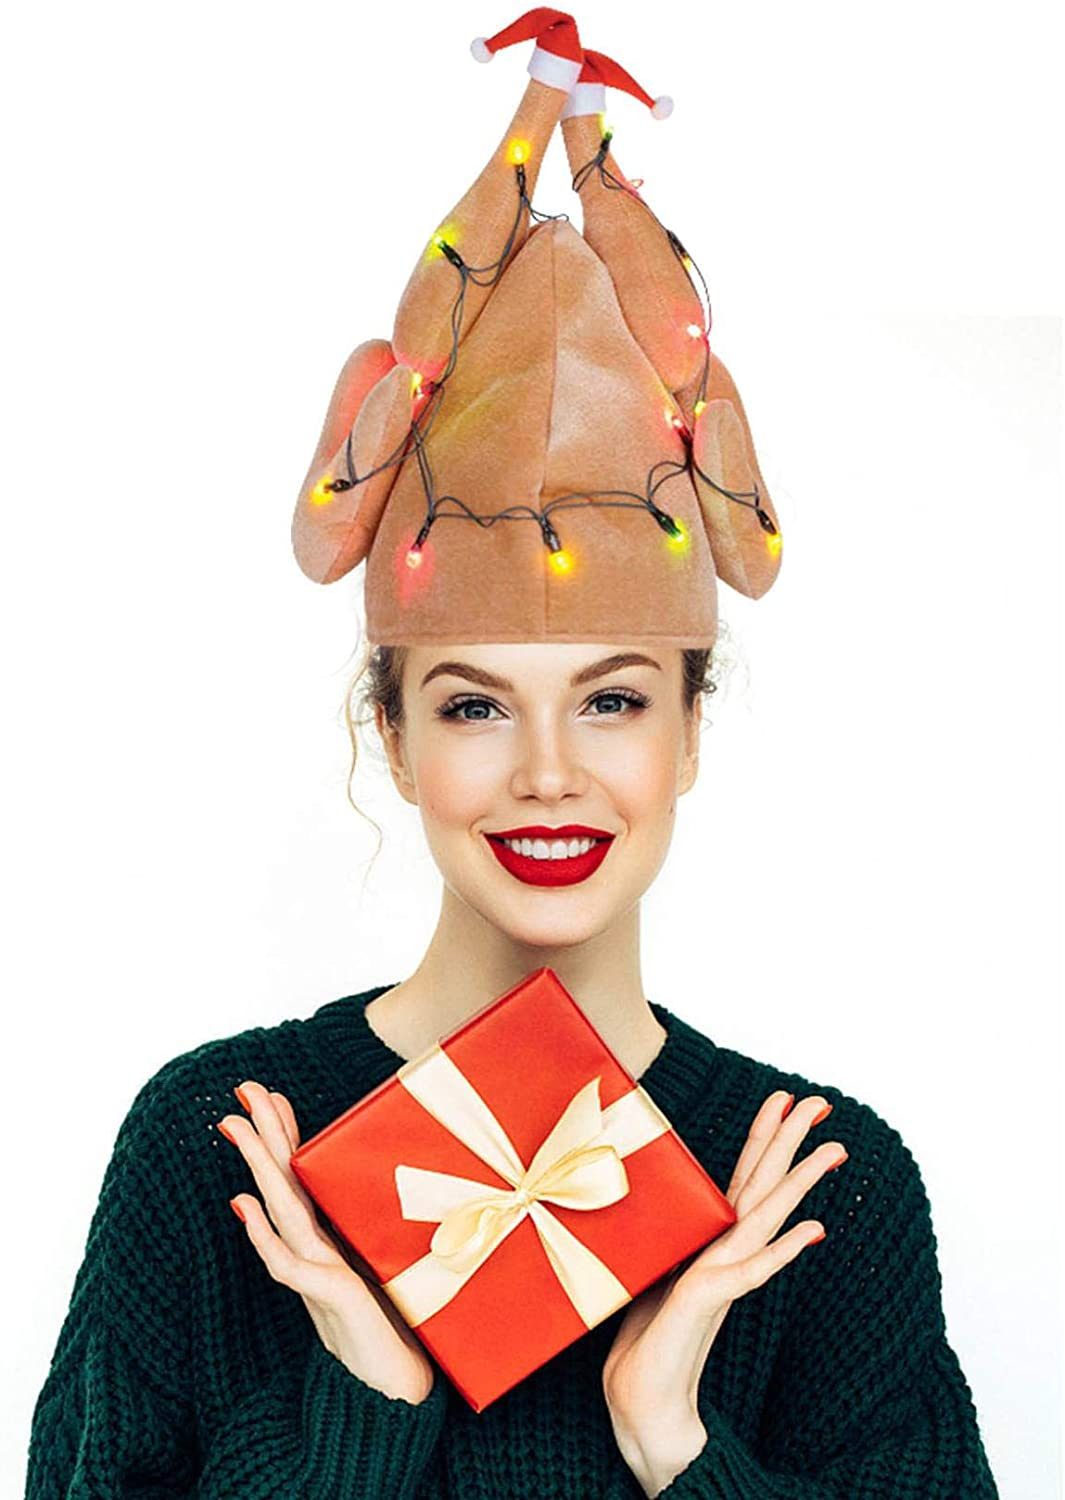 LebonYard Roasted Turkey Hat Thanksgiving Costume Accessory for Thanksgiving Night Event, Dress-up Party, Thanksgiving Decoration, Role Play, Carnival, Cosplay, Costume Accessories (B , 1PC)